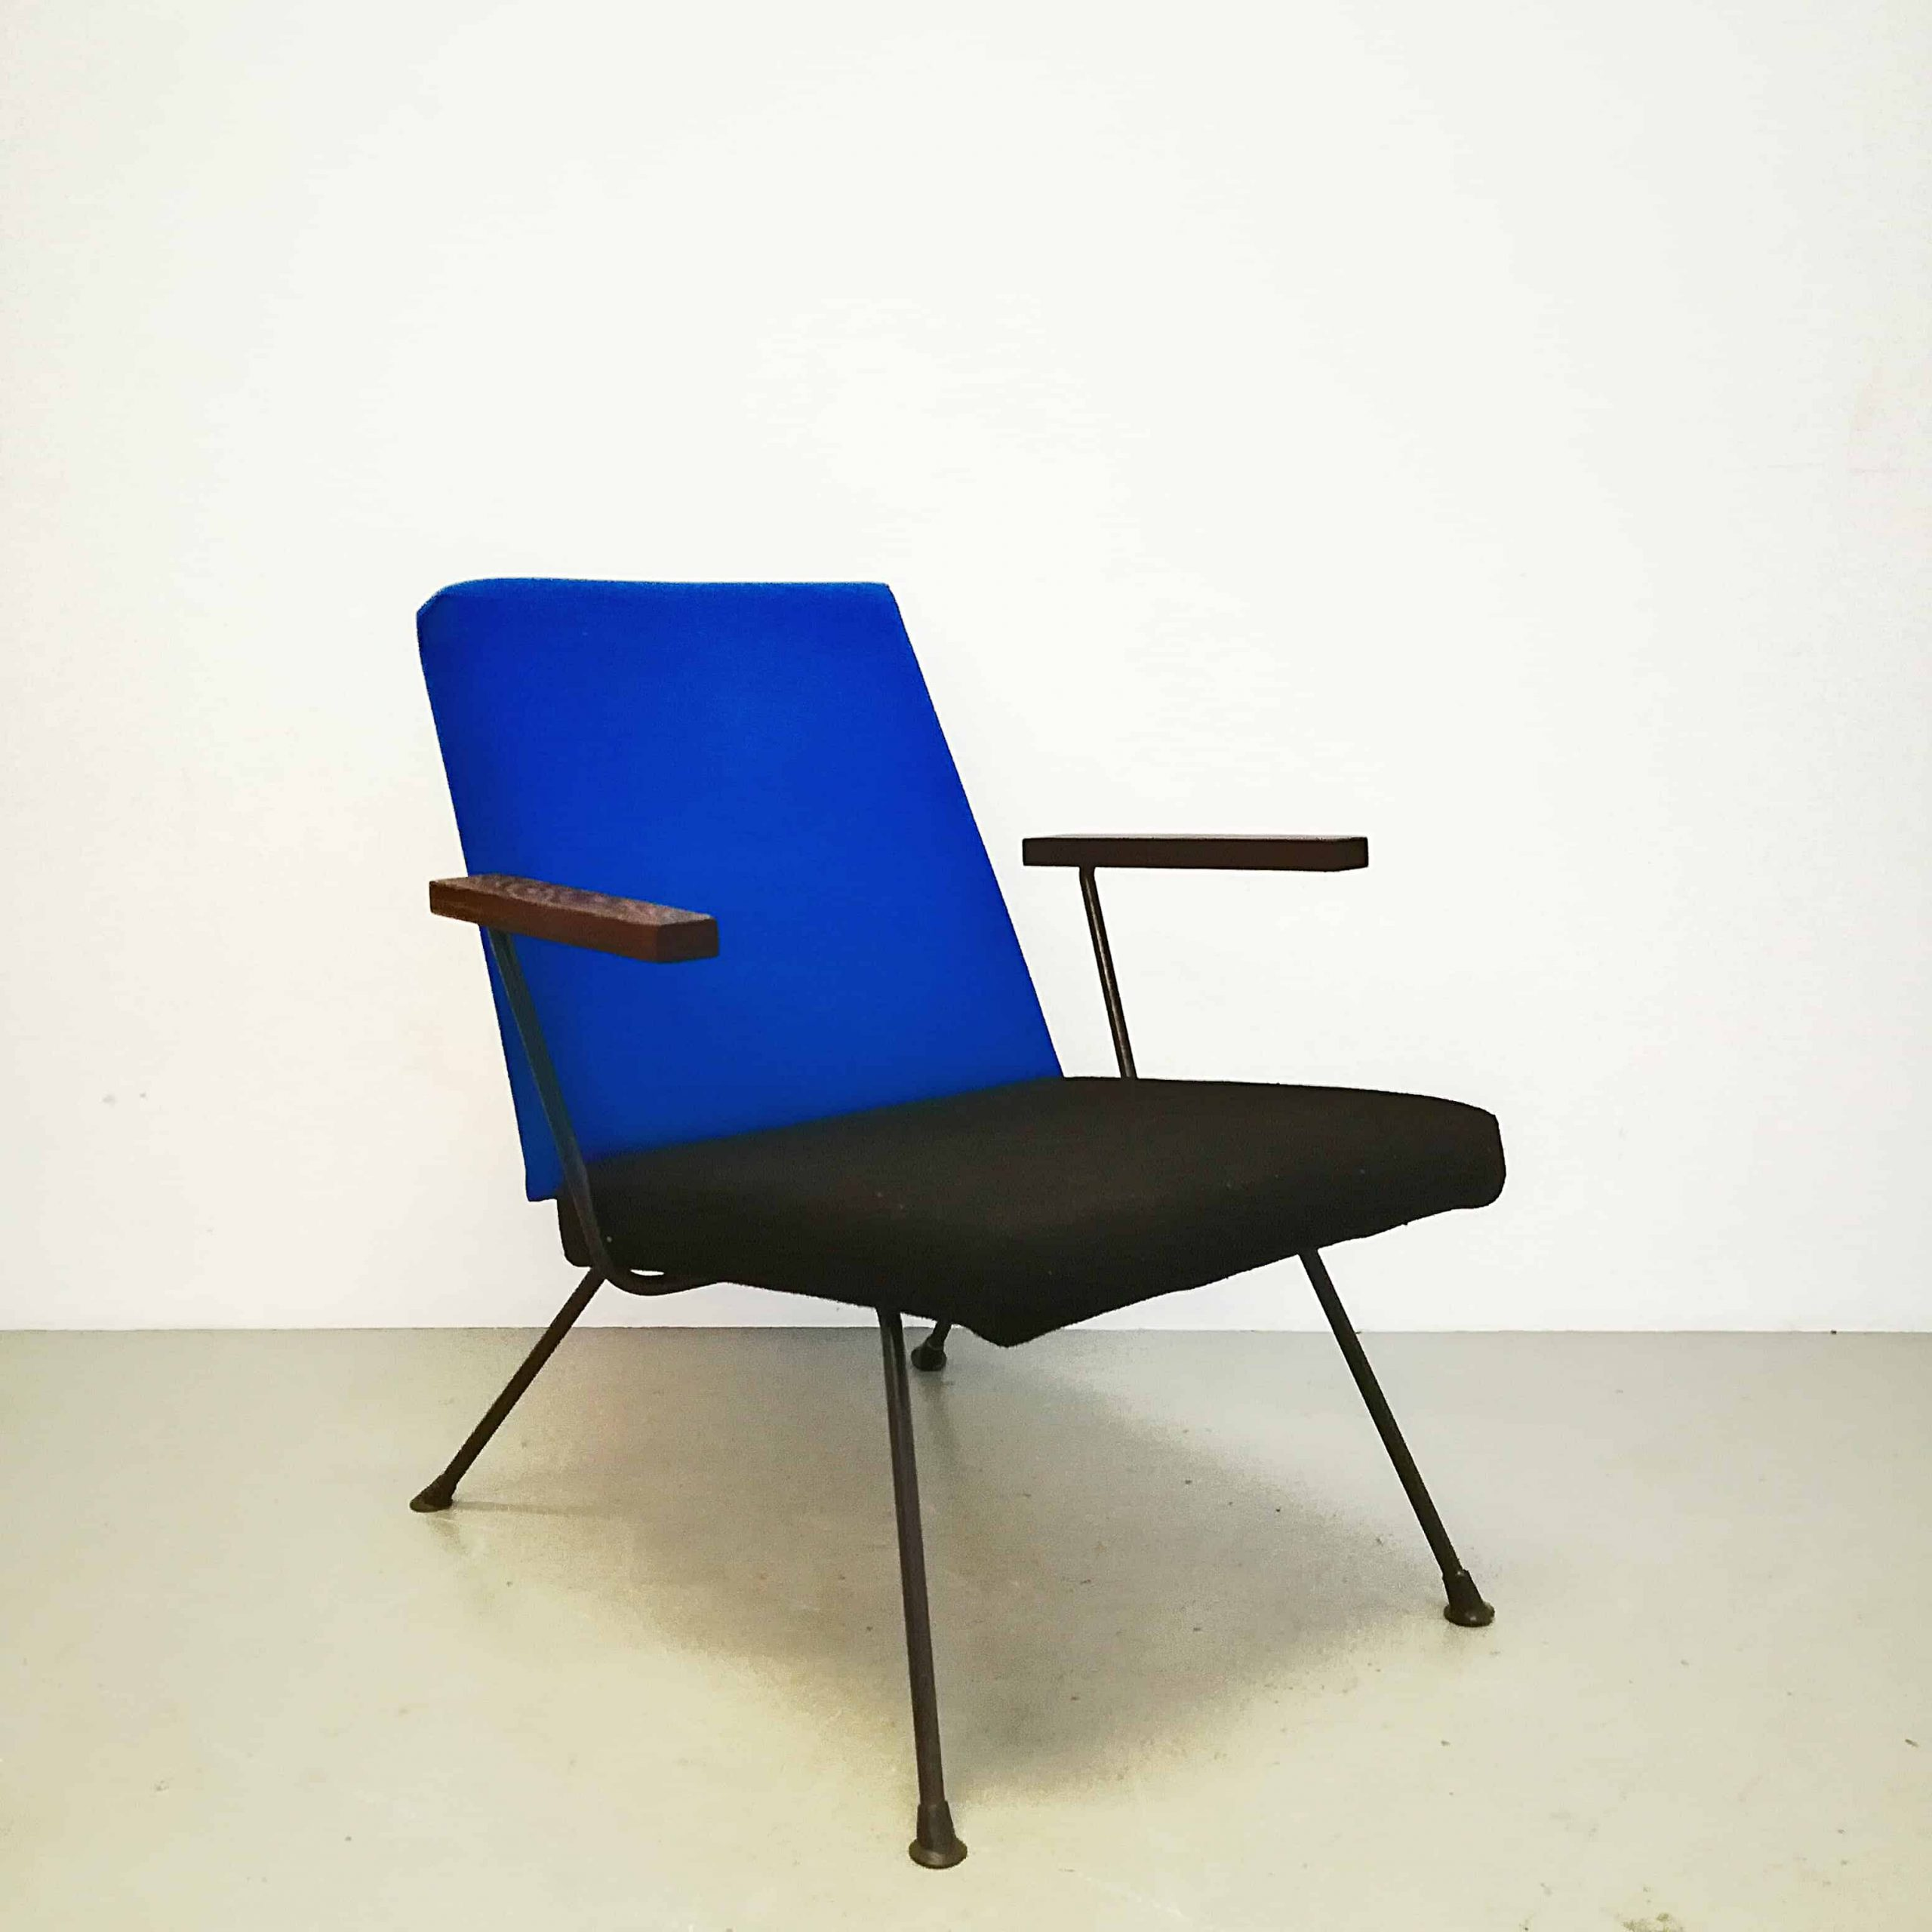 chaise-fauteuil-gispen-model-1409-cordemeyer-metal-wood-accoudoirs-teak-1959-1950's-years-50-design-dutch